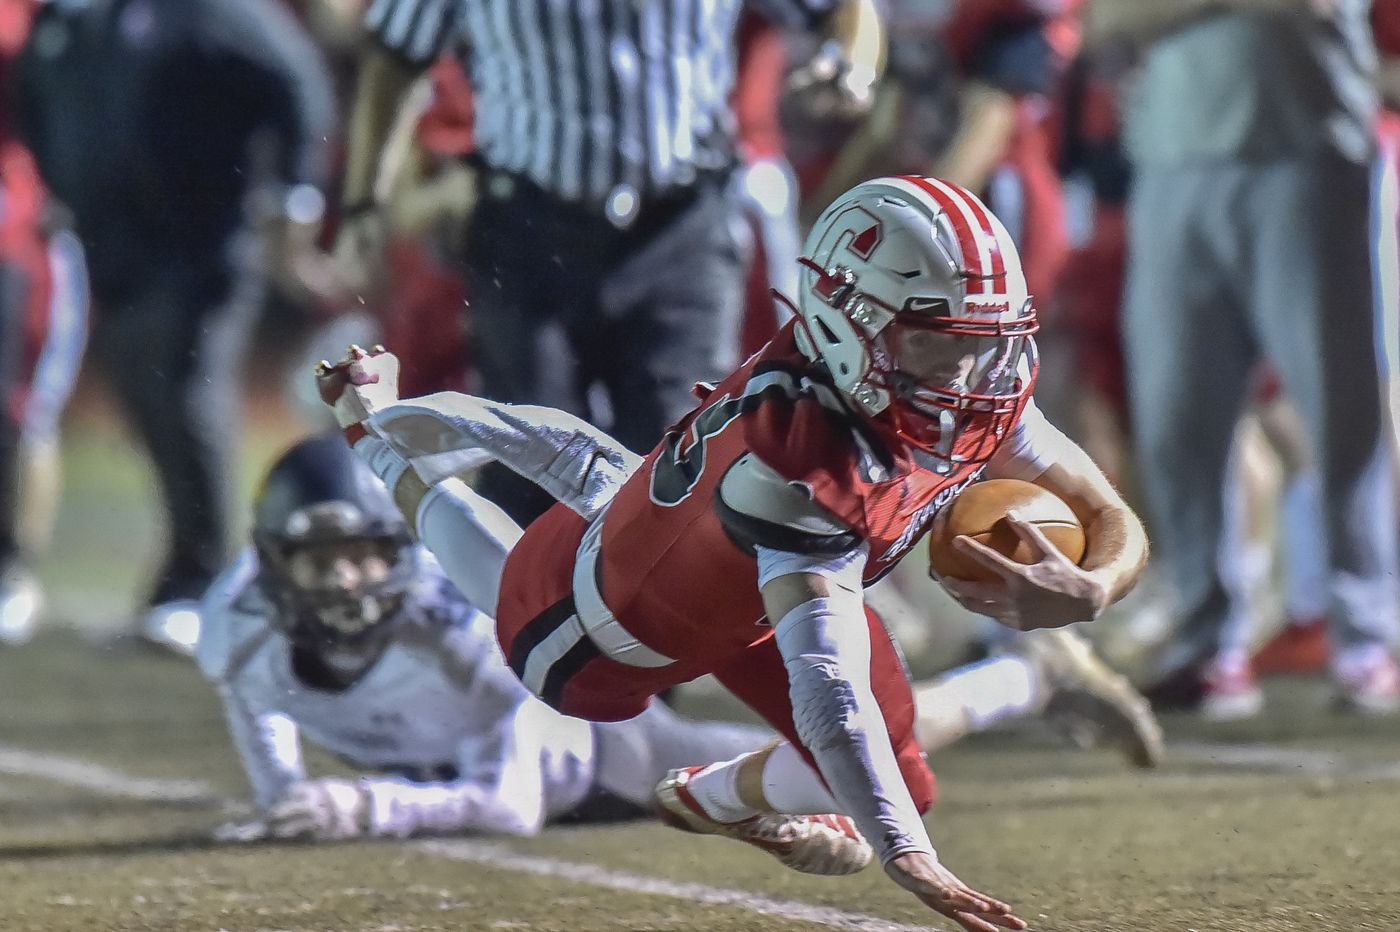 Nick Lamey sets pace for Archbishop Carroll in PIAA football playoffs